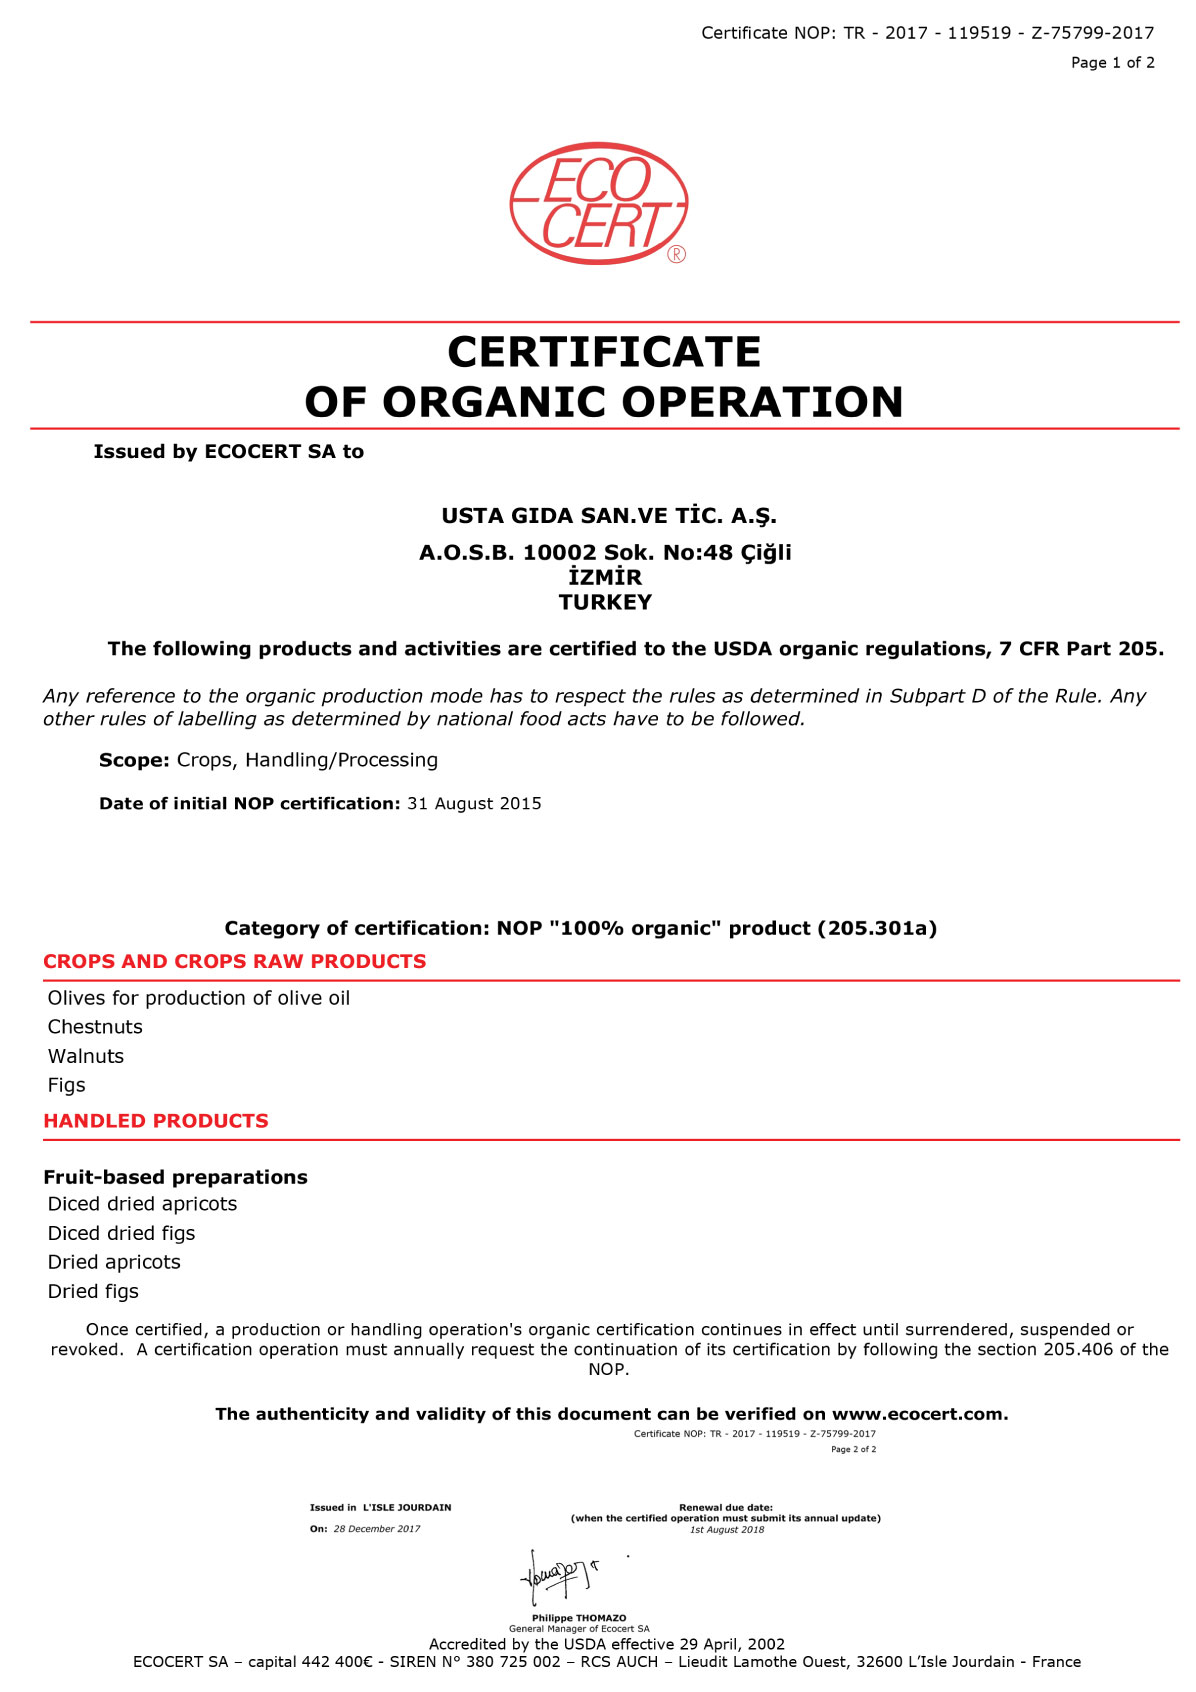 Certificate of Organic Operation - Usta Food Industry Agricultural